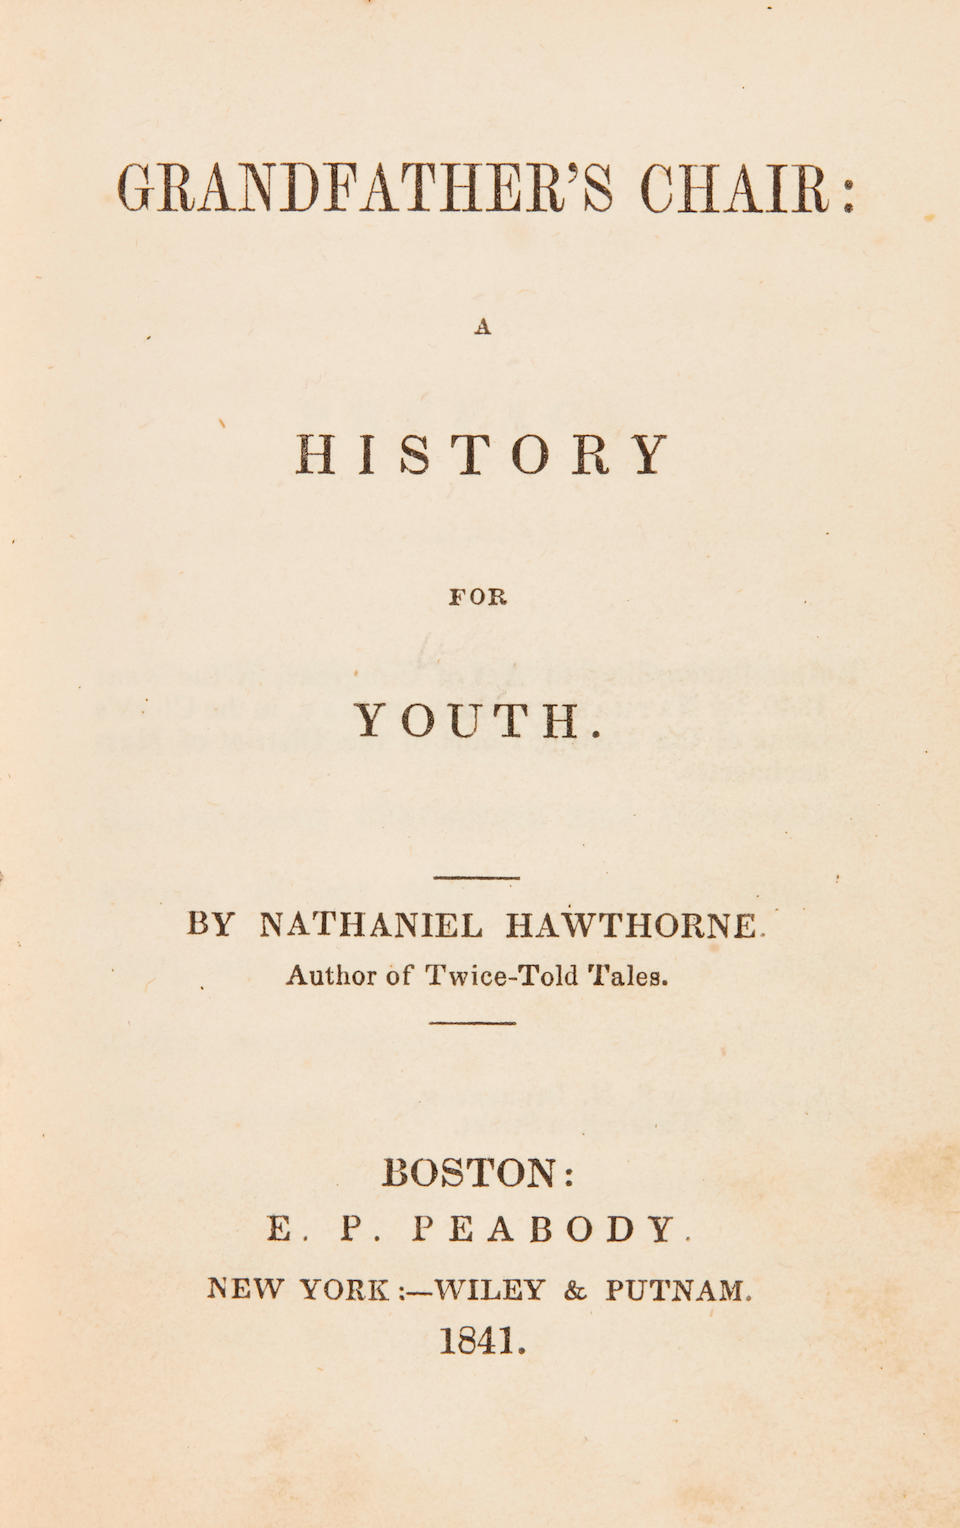 HAWTHORNE, NATHANIEL.  1804-1864. Hawthorne's Grandfather's Chair trilogy